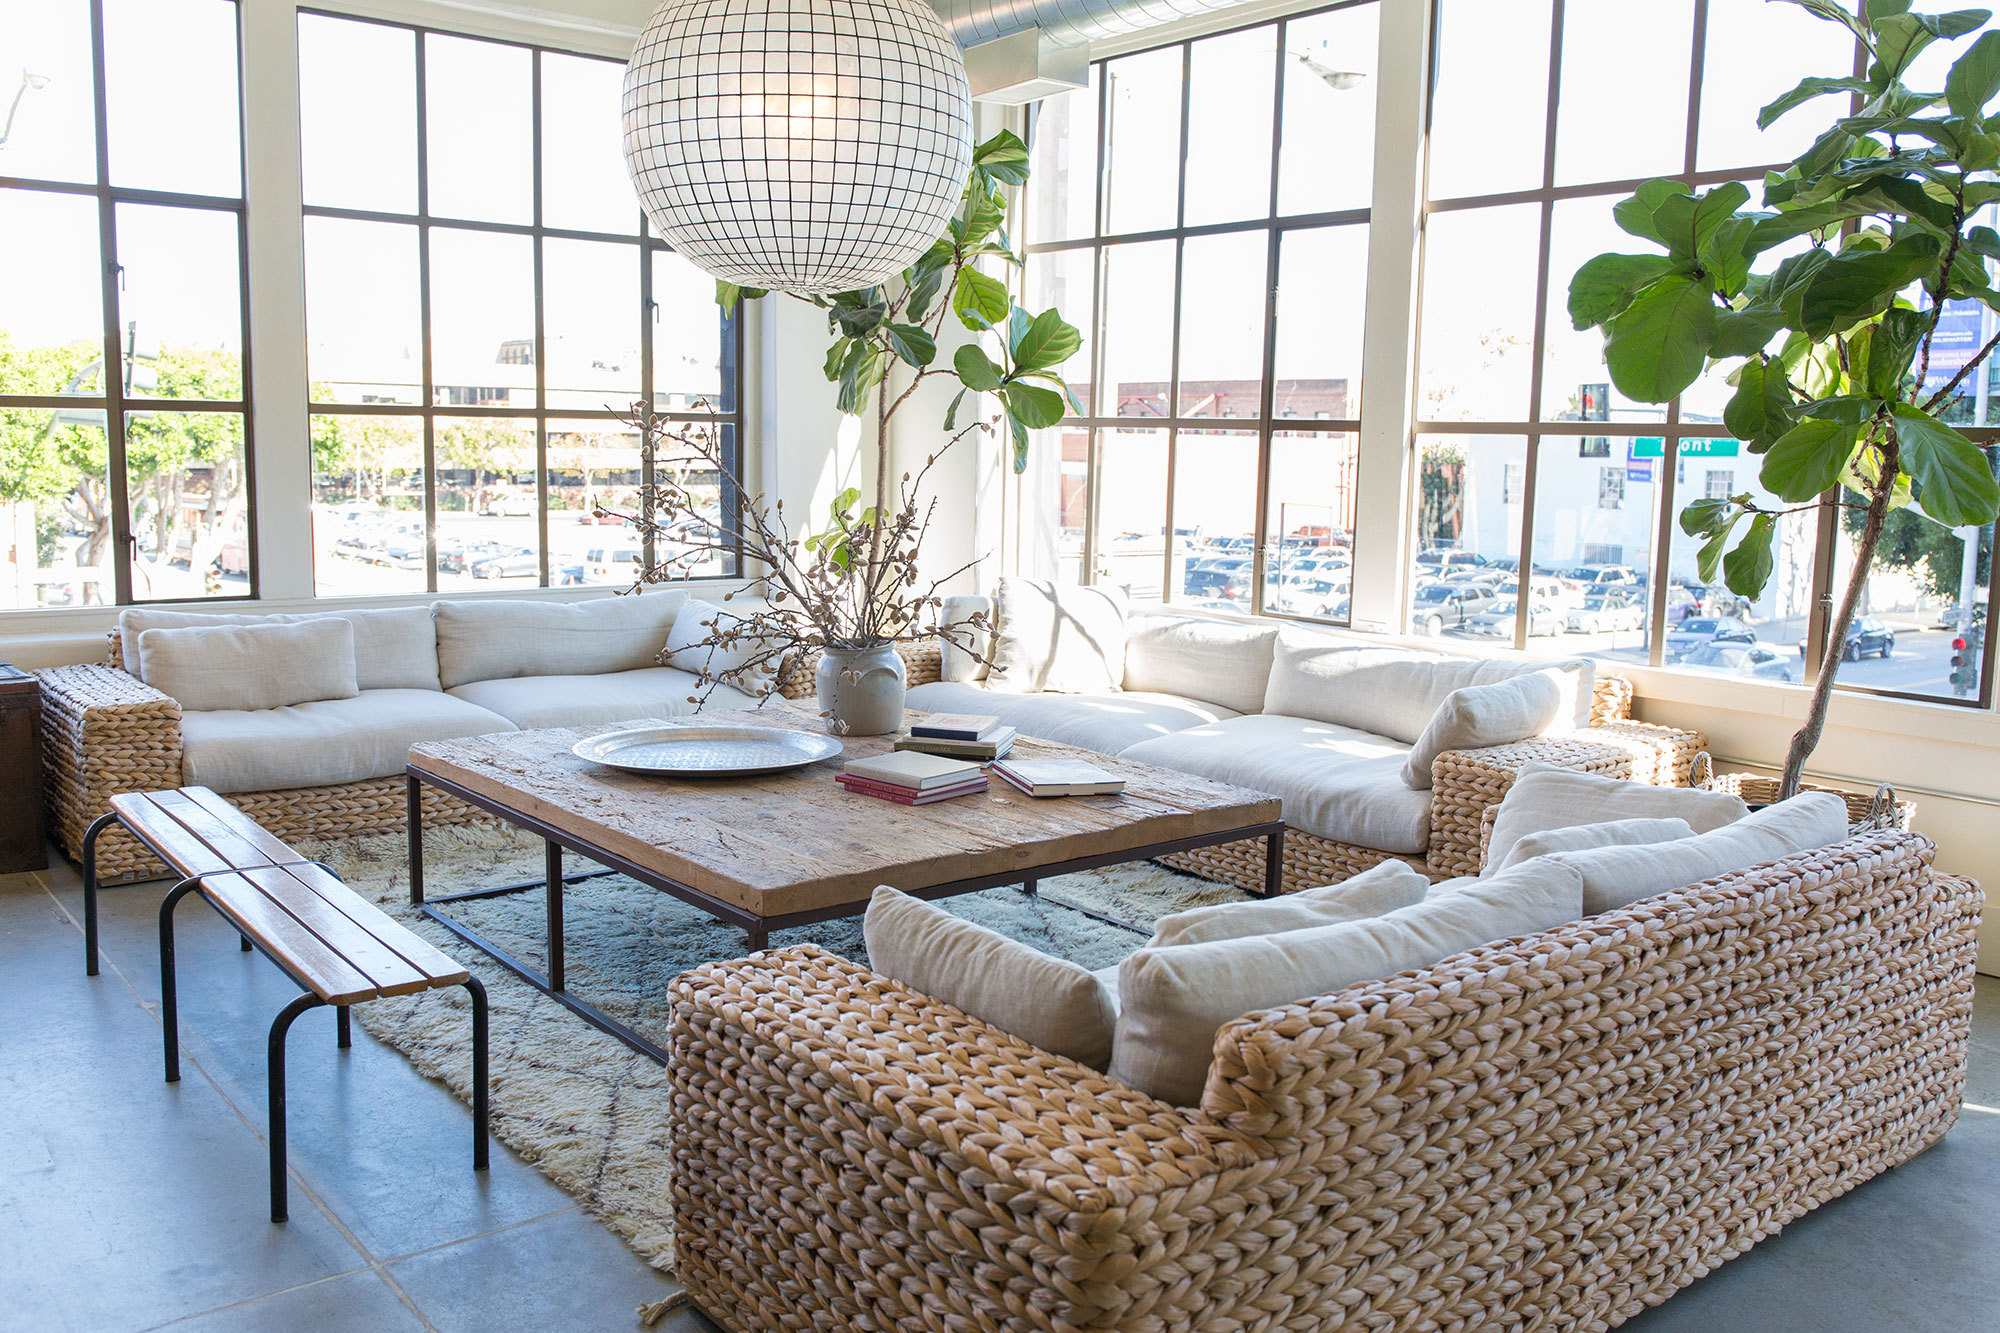 The Minted Headquarters aren't your ordinary offices. Employees enjoy communal spaces like this sunny sitting area outfitted with oversized wicker sofas.